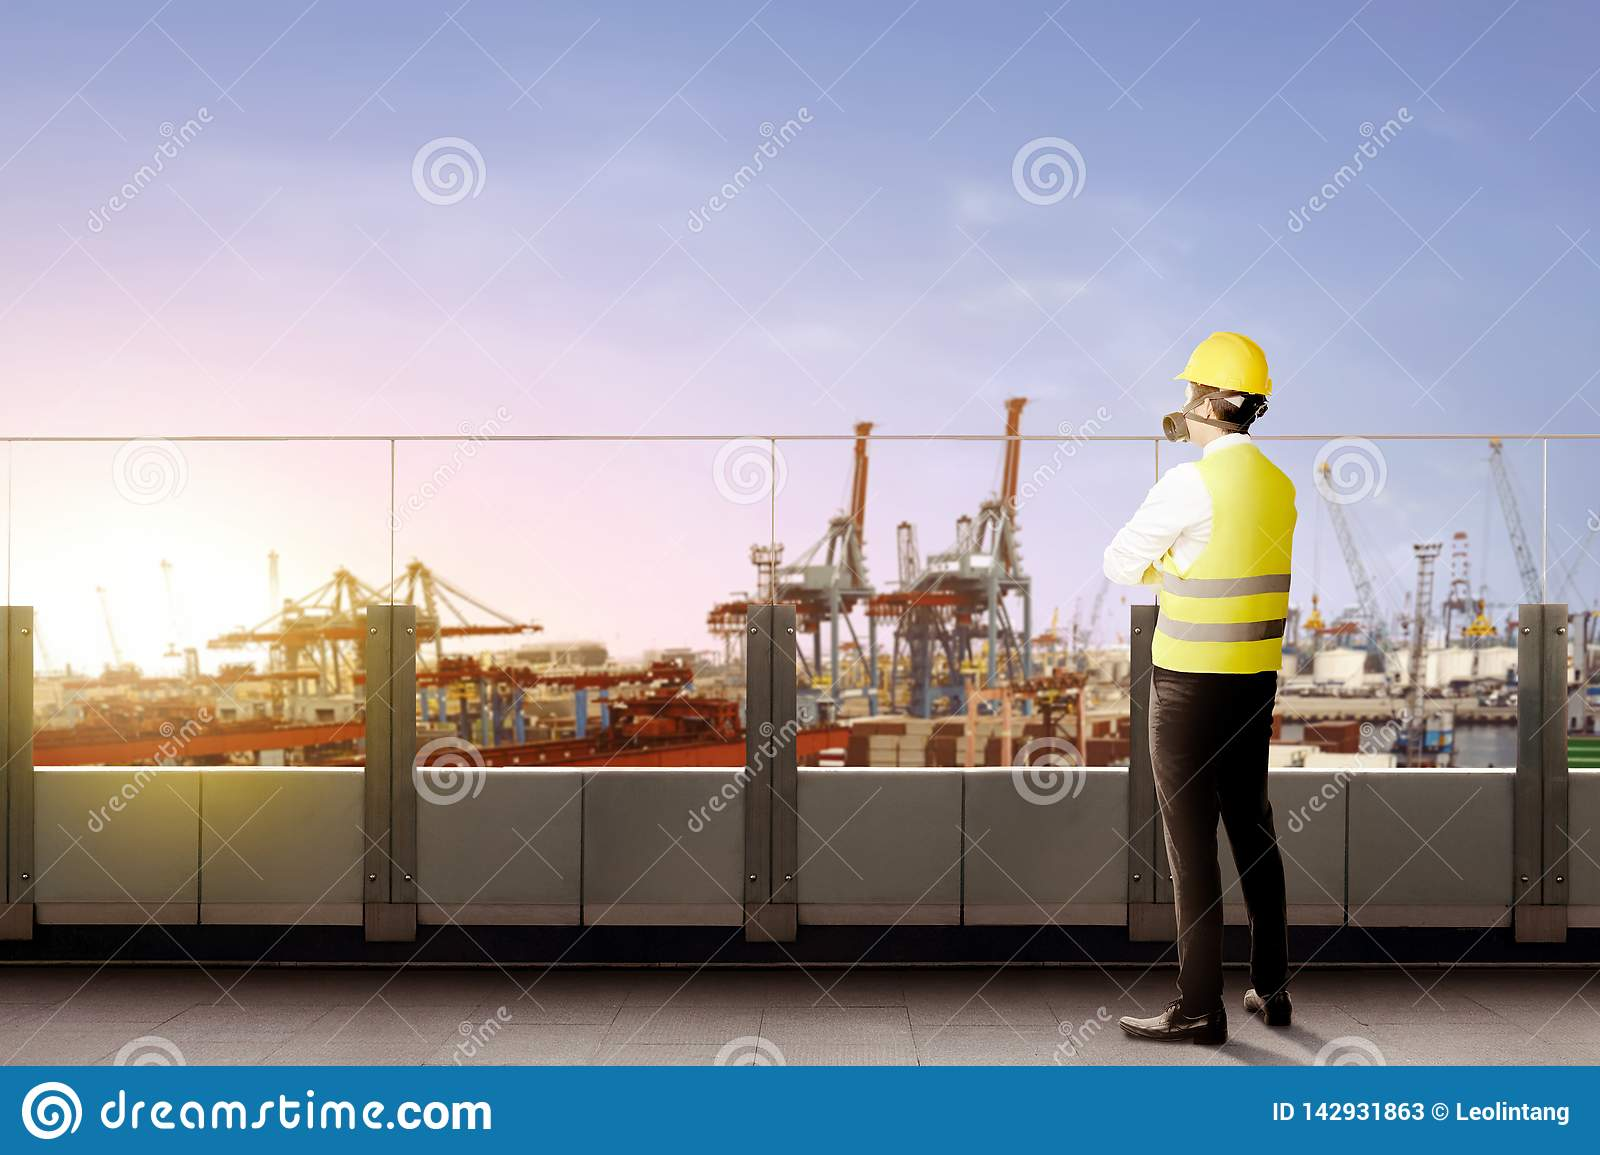 Rear view of asian male worker with safety vest, hard hat and protective mask standing on office terrace and looking at dock